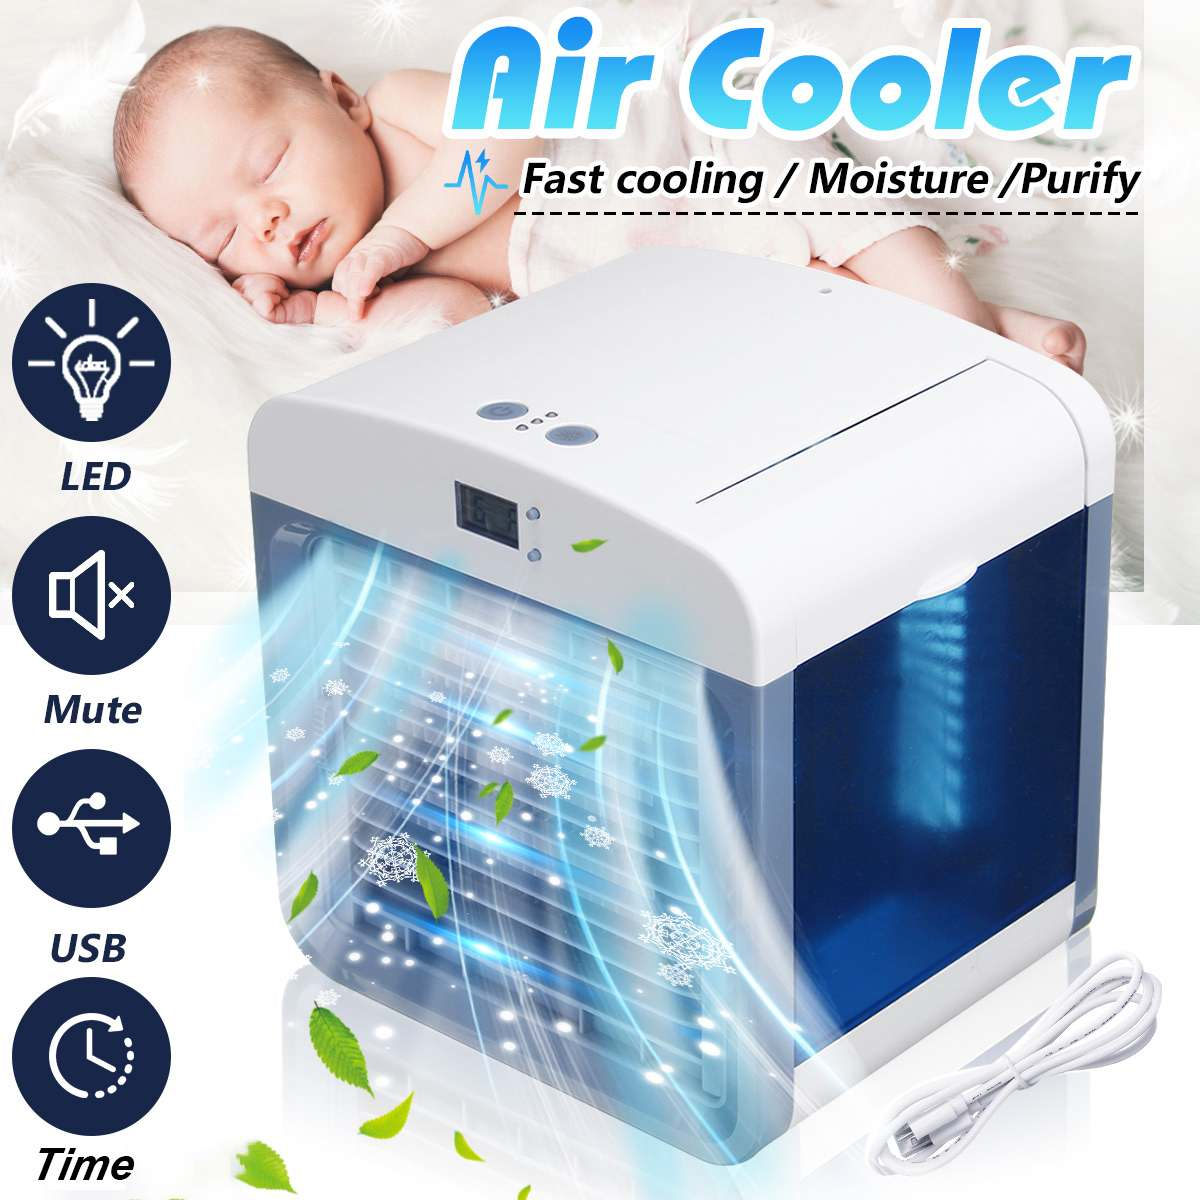 Mini Air Cooler Cool Cooling Fan USB Portable Purify Humidifier With Time Display Low Energy Consumption Air Conditioners